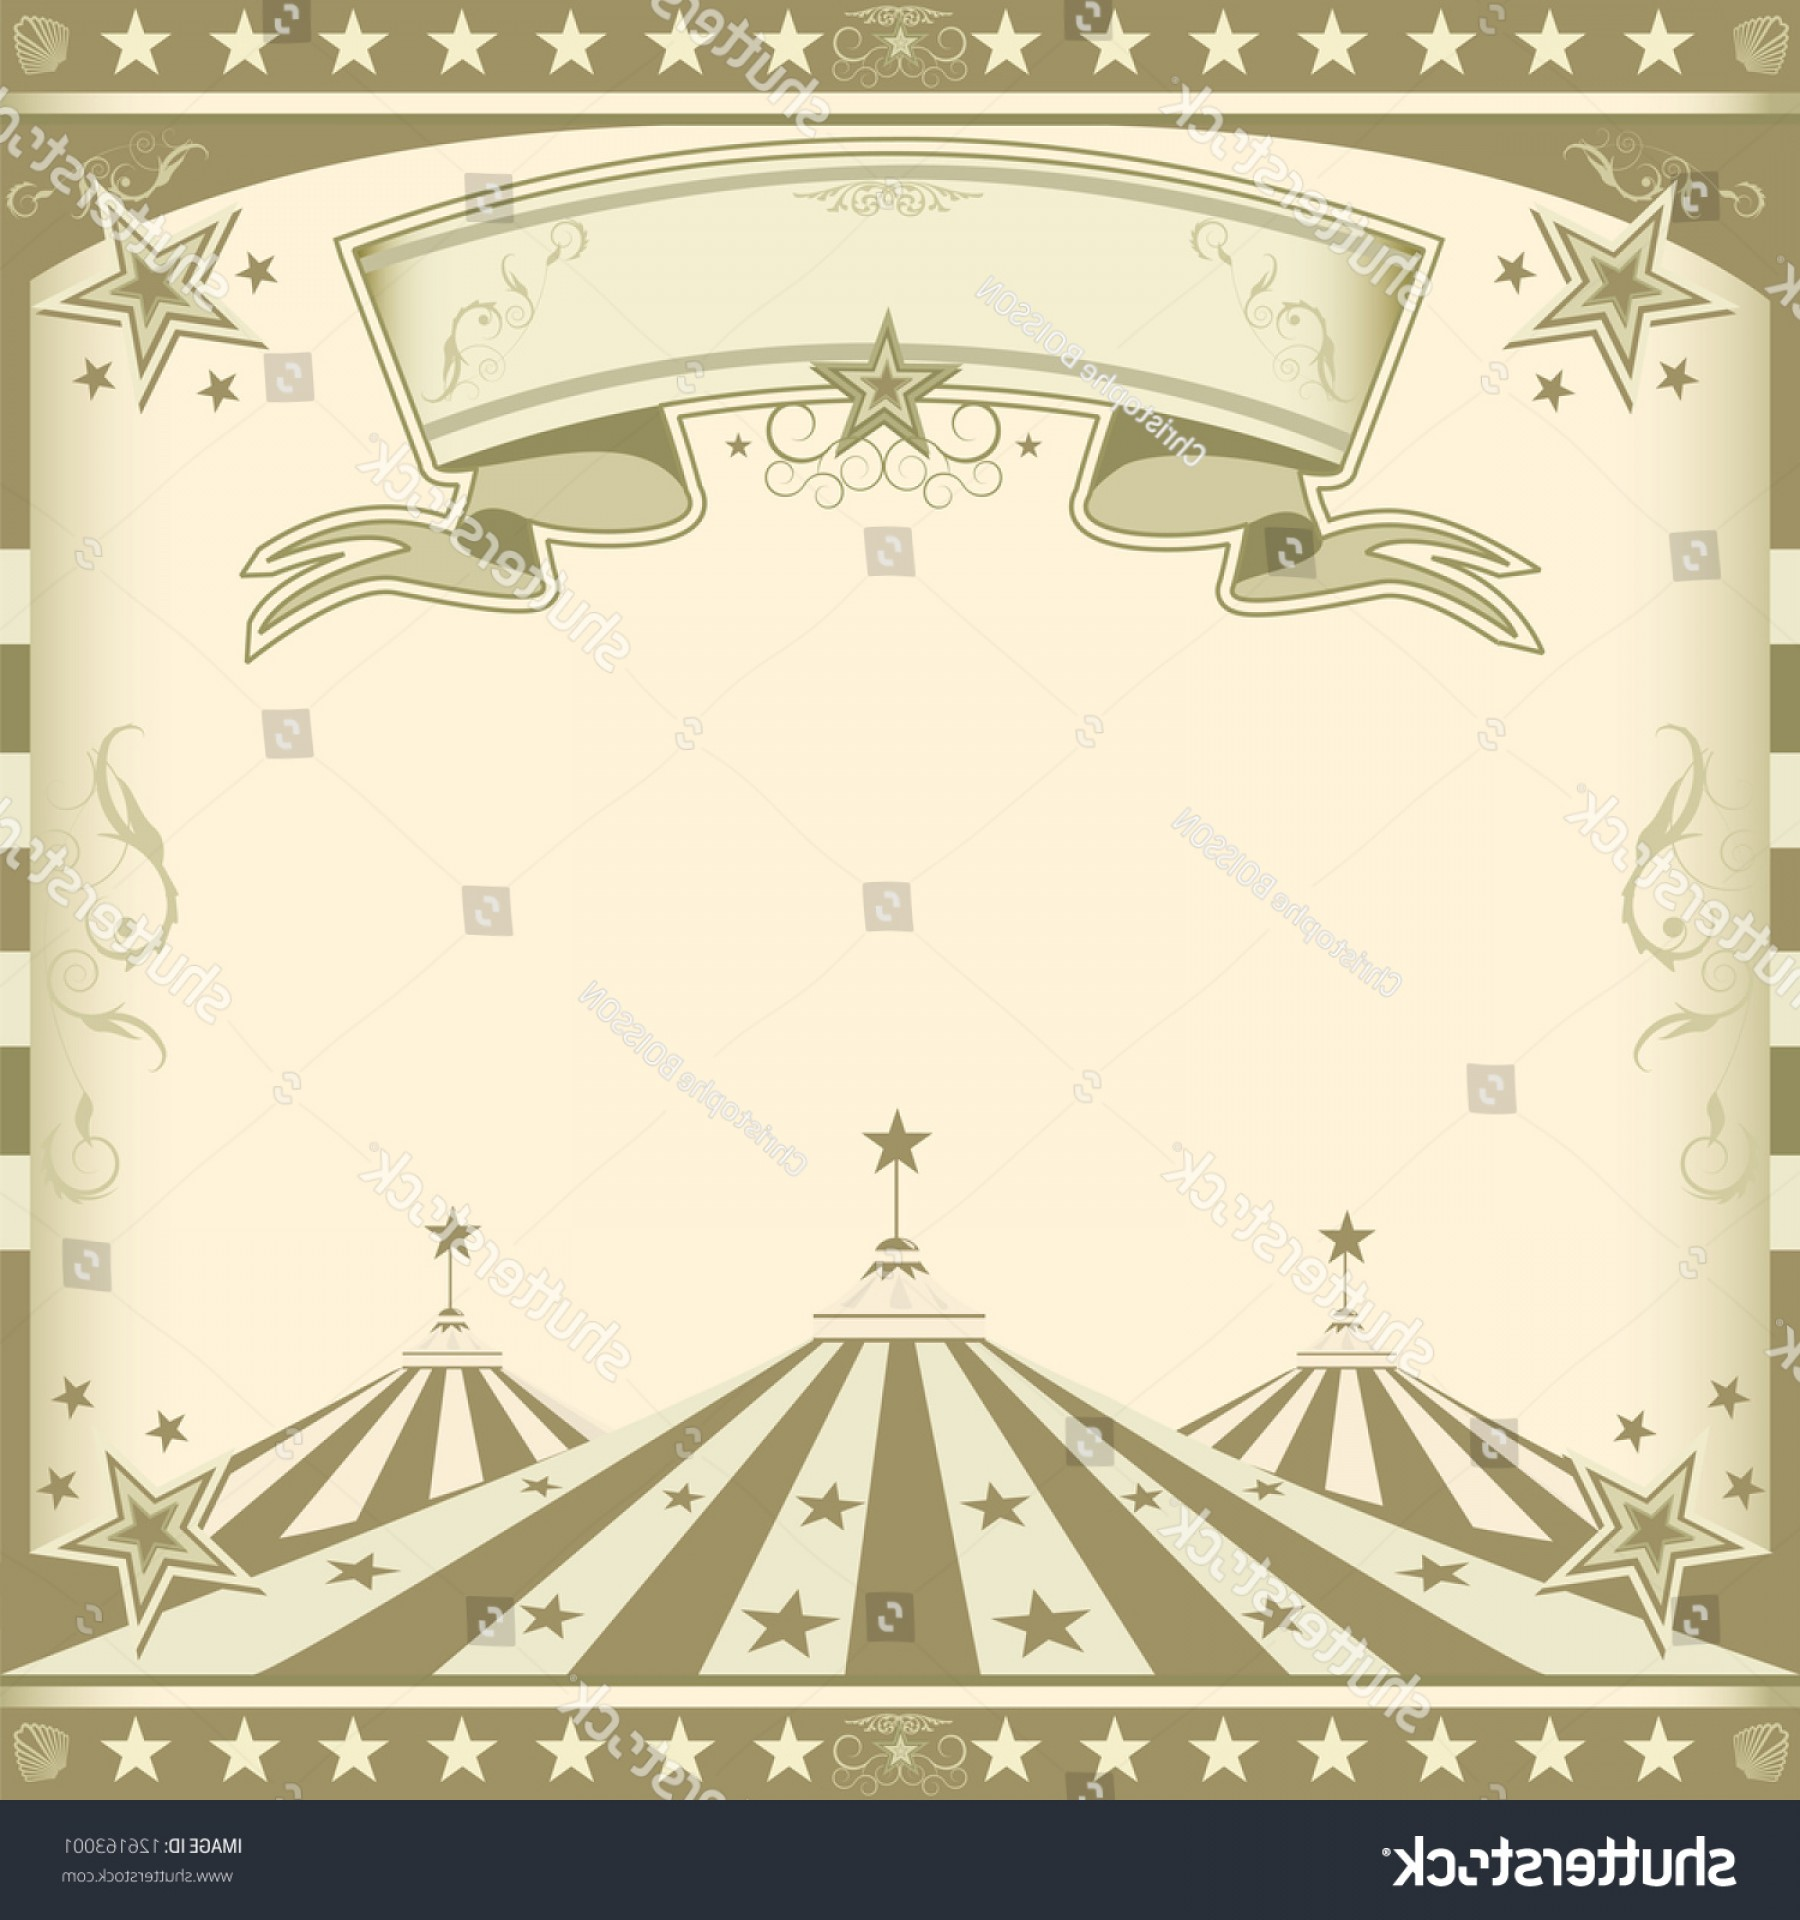 Circus Background Vector: Square Brown Vintage Circus Retro Background